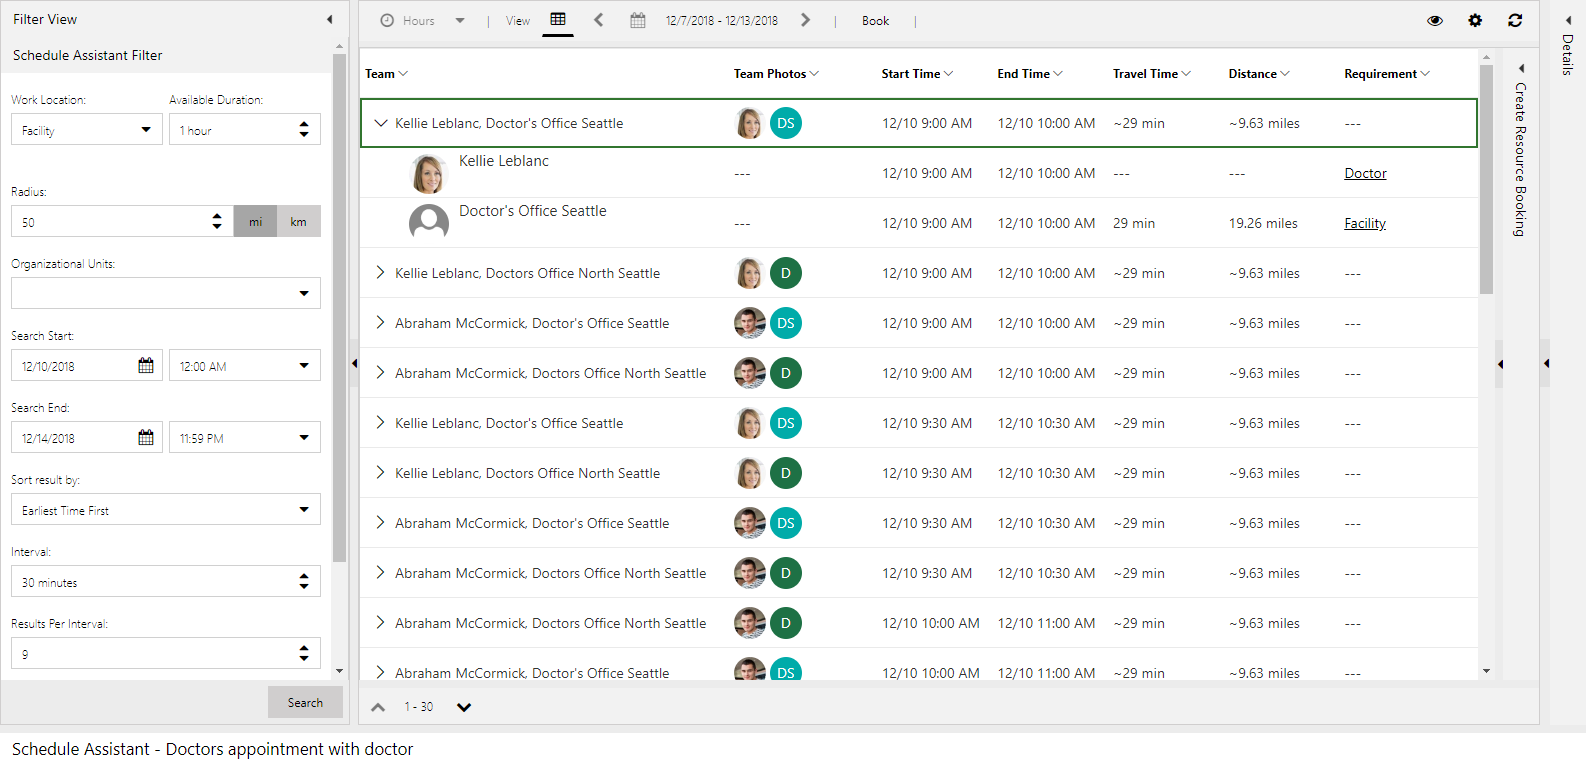 Screenshot of schedule assistant results pairing a resource with a facility resource to meet the requirement group